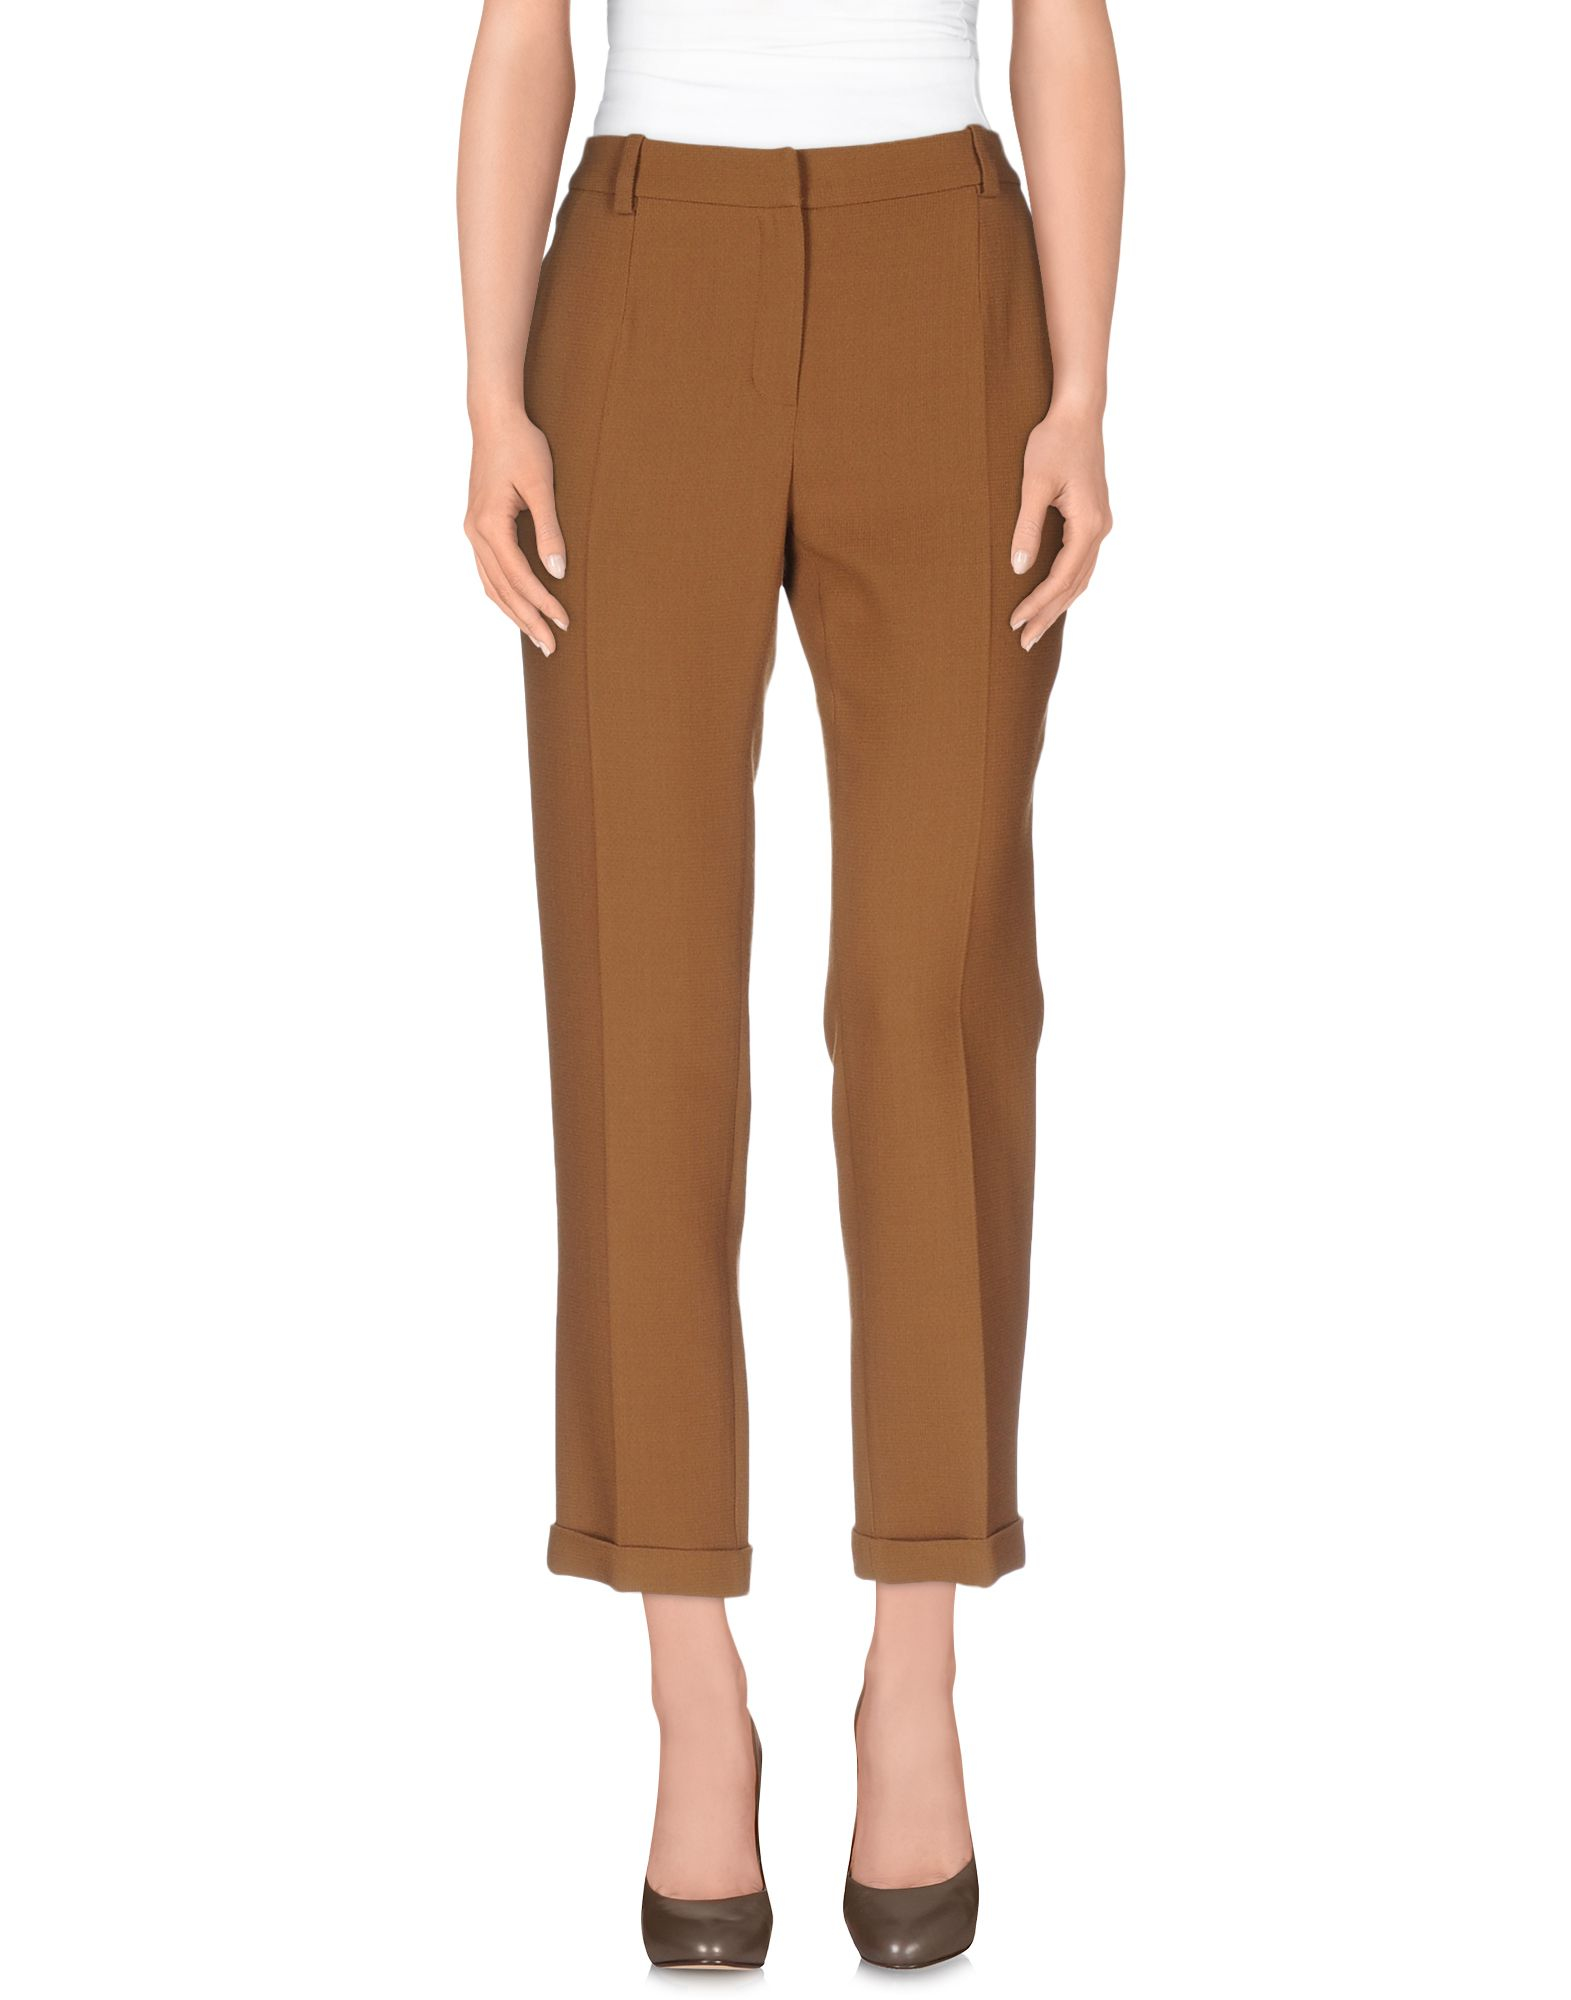 Simple  Womens CampA Brown Khaki Yessica Belted Chino Shorts Hot Pants Size UK 6